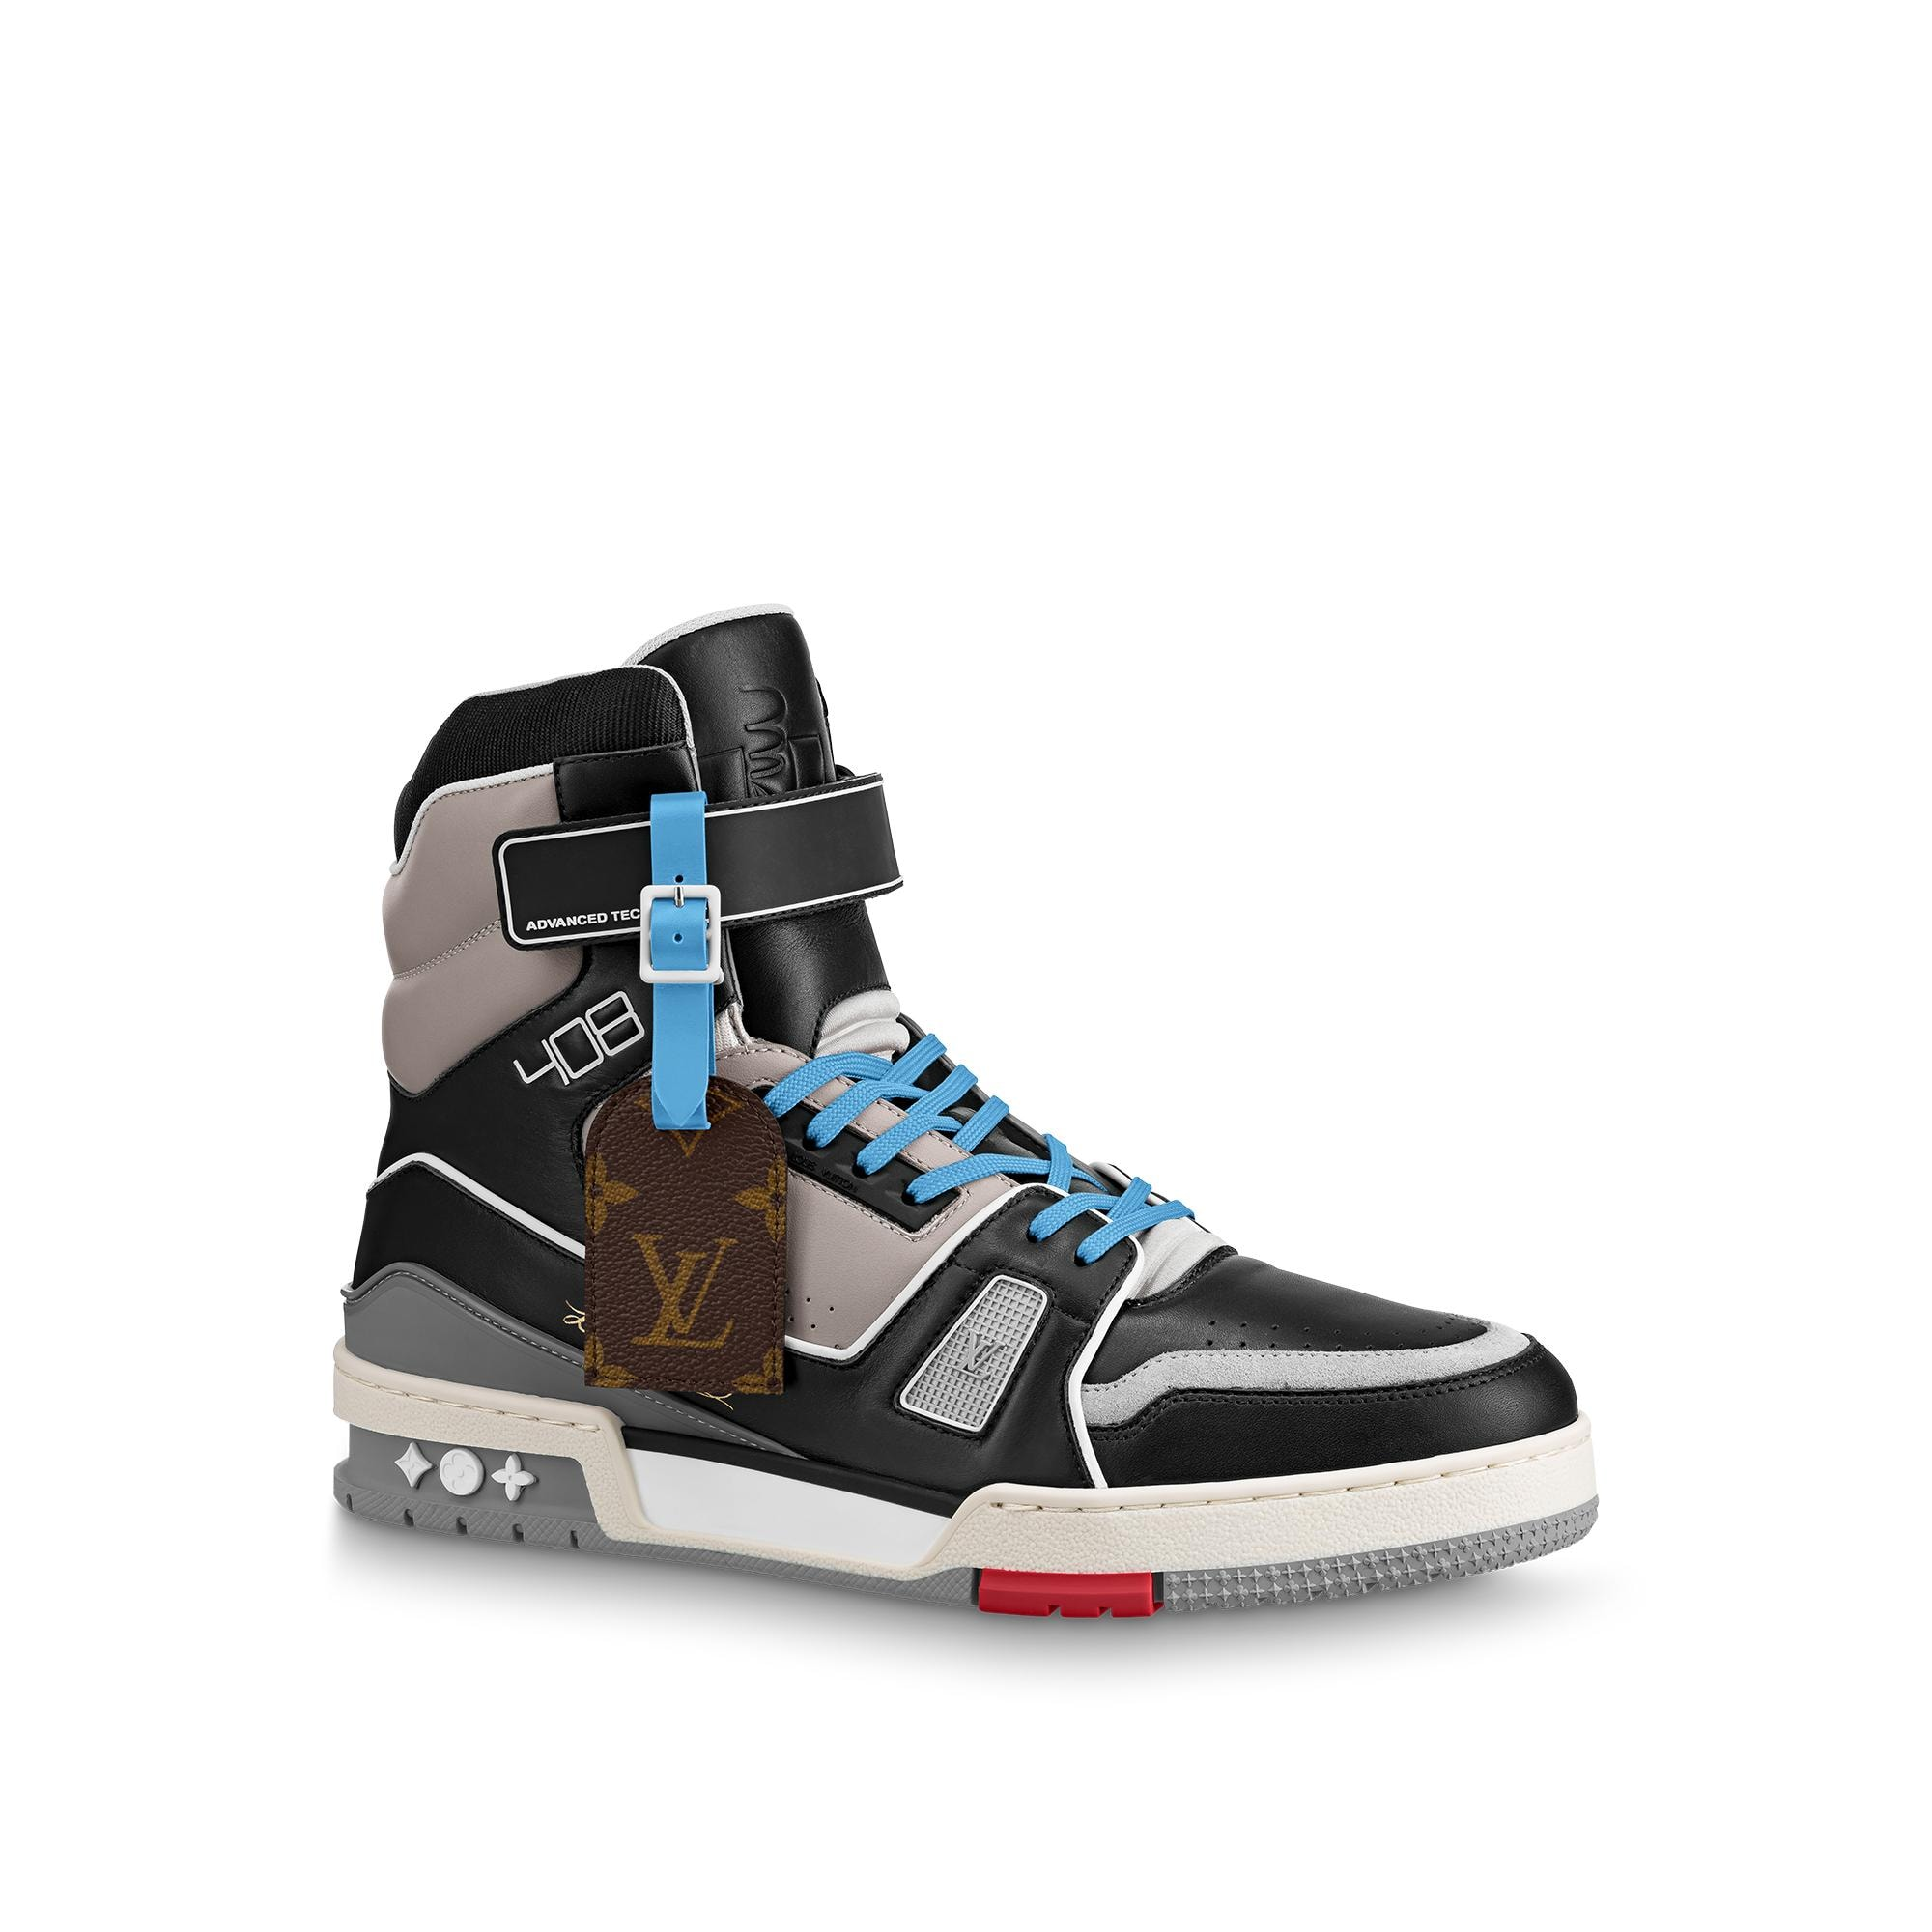 유럽직배송 루이비통 LOUIS VUITTON LV Trainer Boot 1A7RVJ